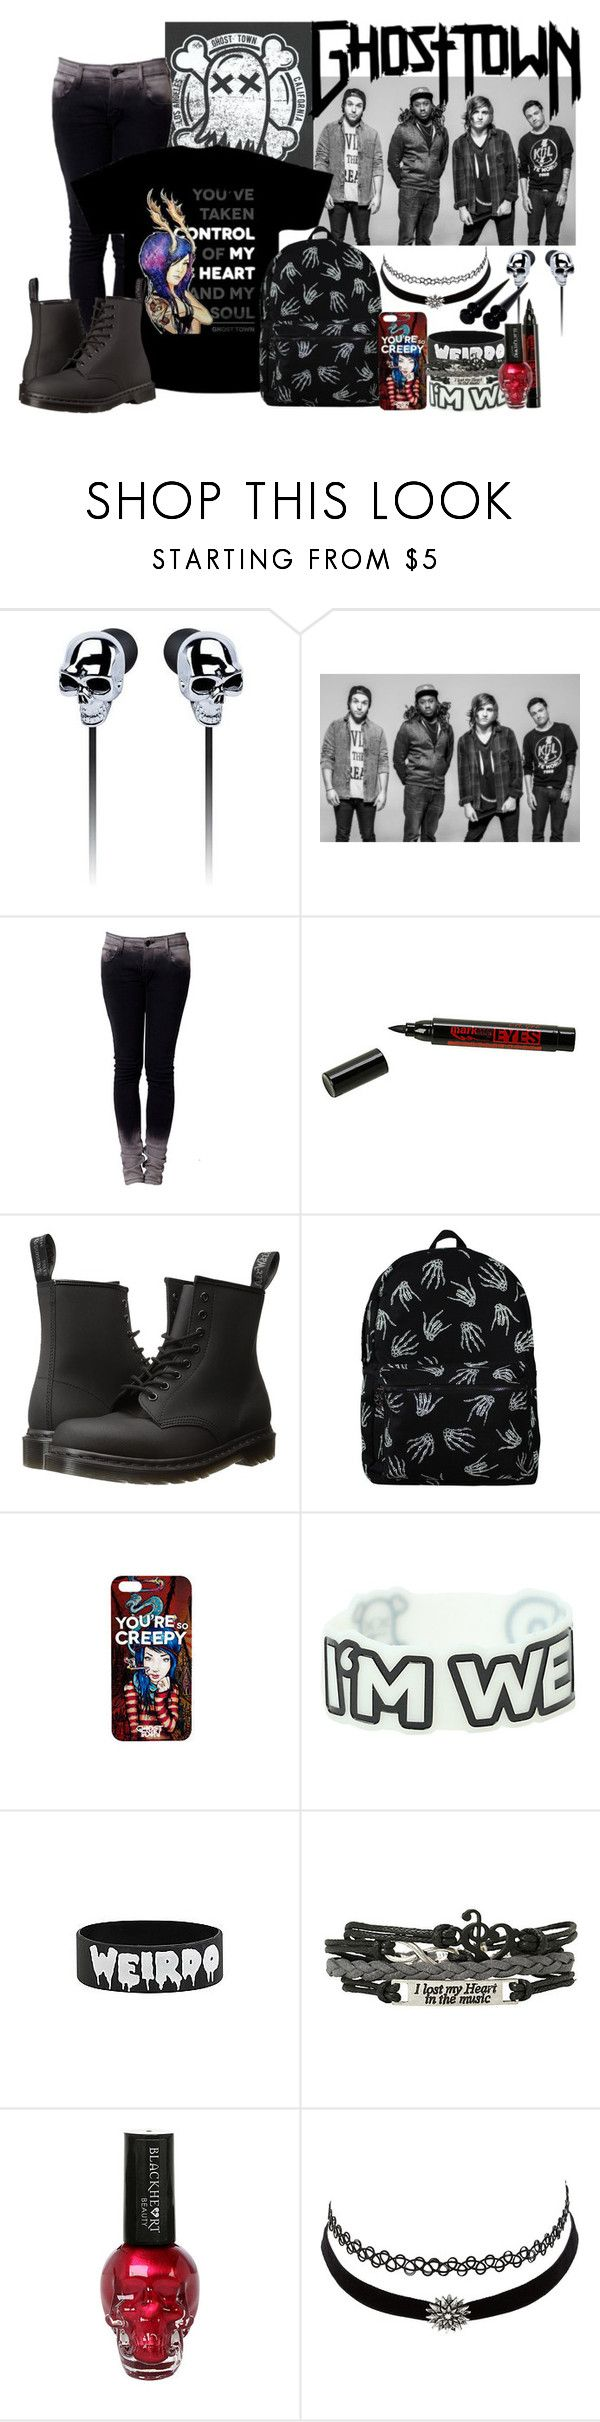 """Band tag, ghost town"" by zombielover100 ❤ liked on Polyvore featuring Hot Topic, Dr. Martens and Charlotte Russe"